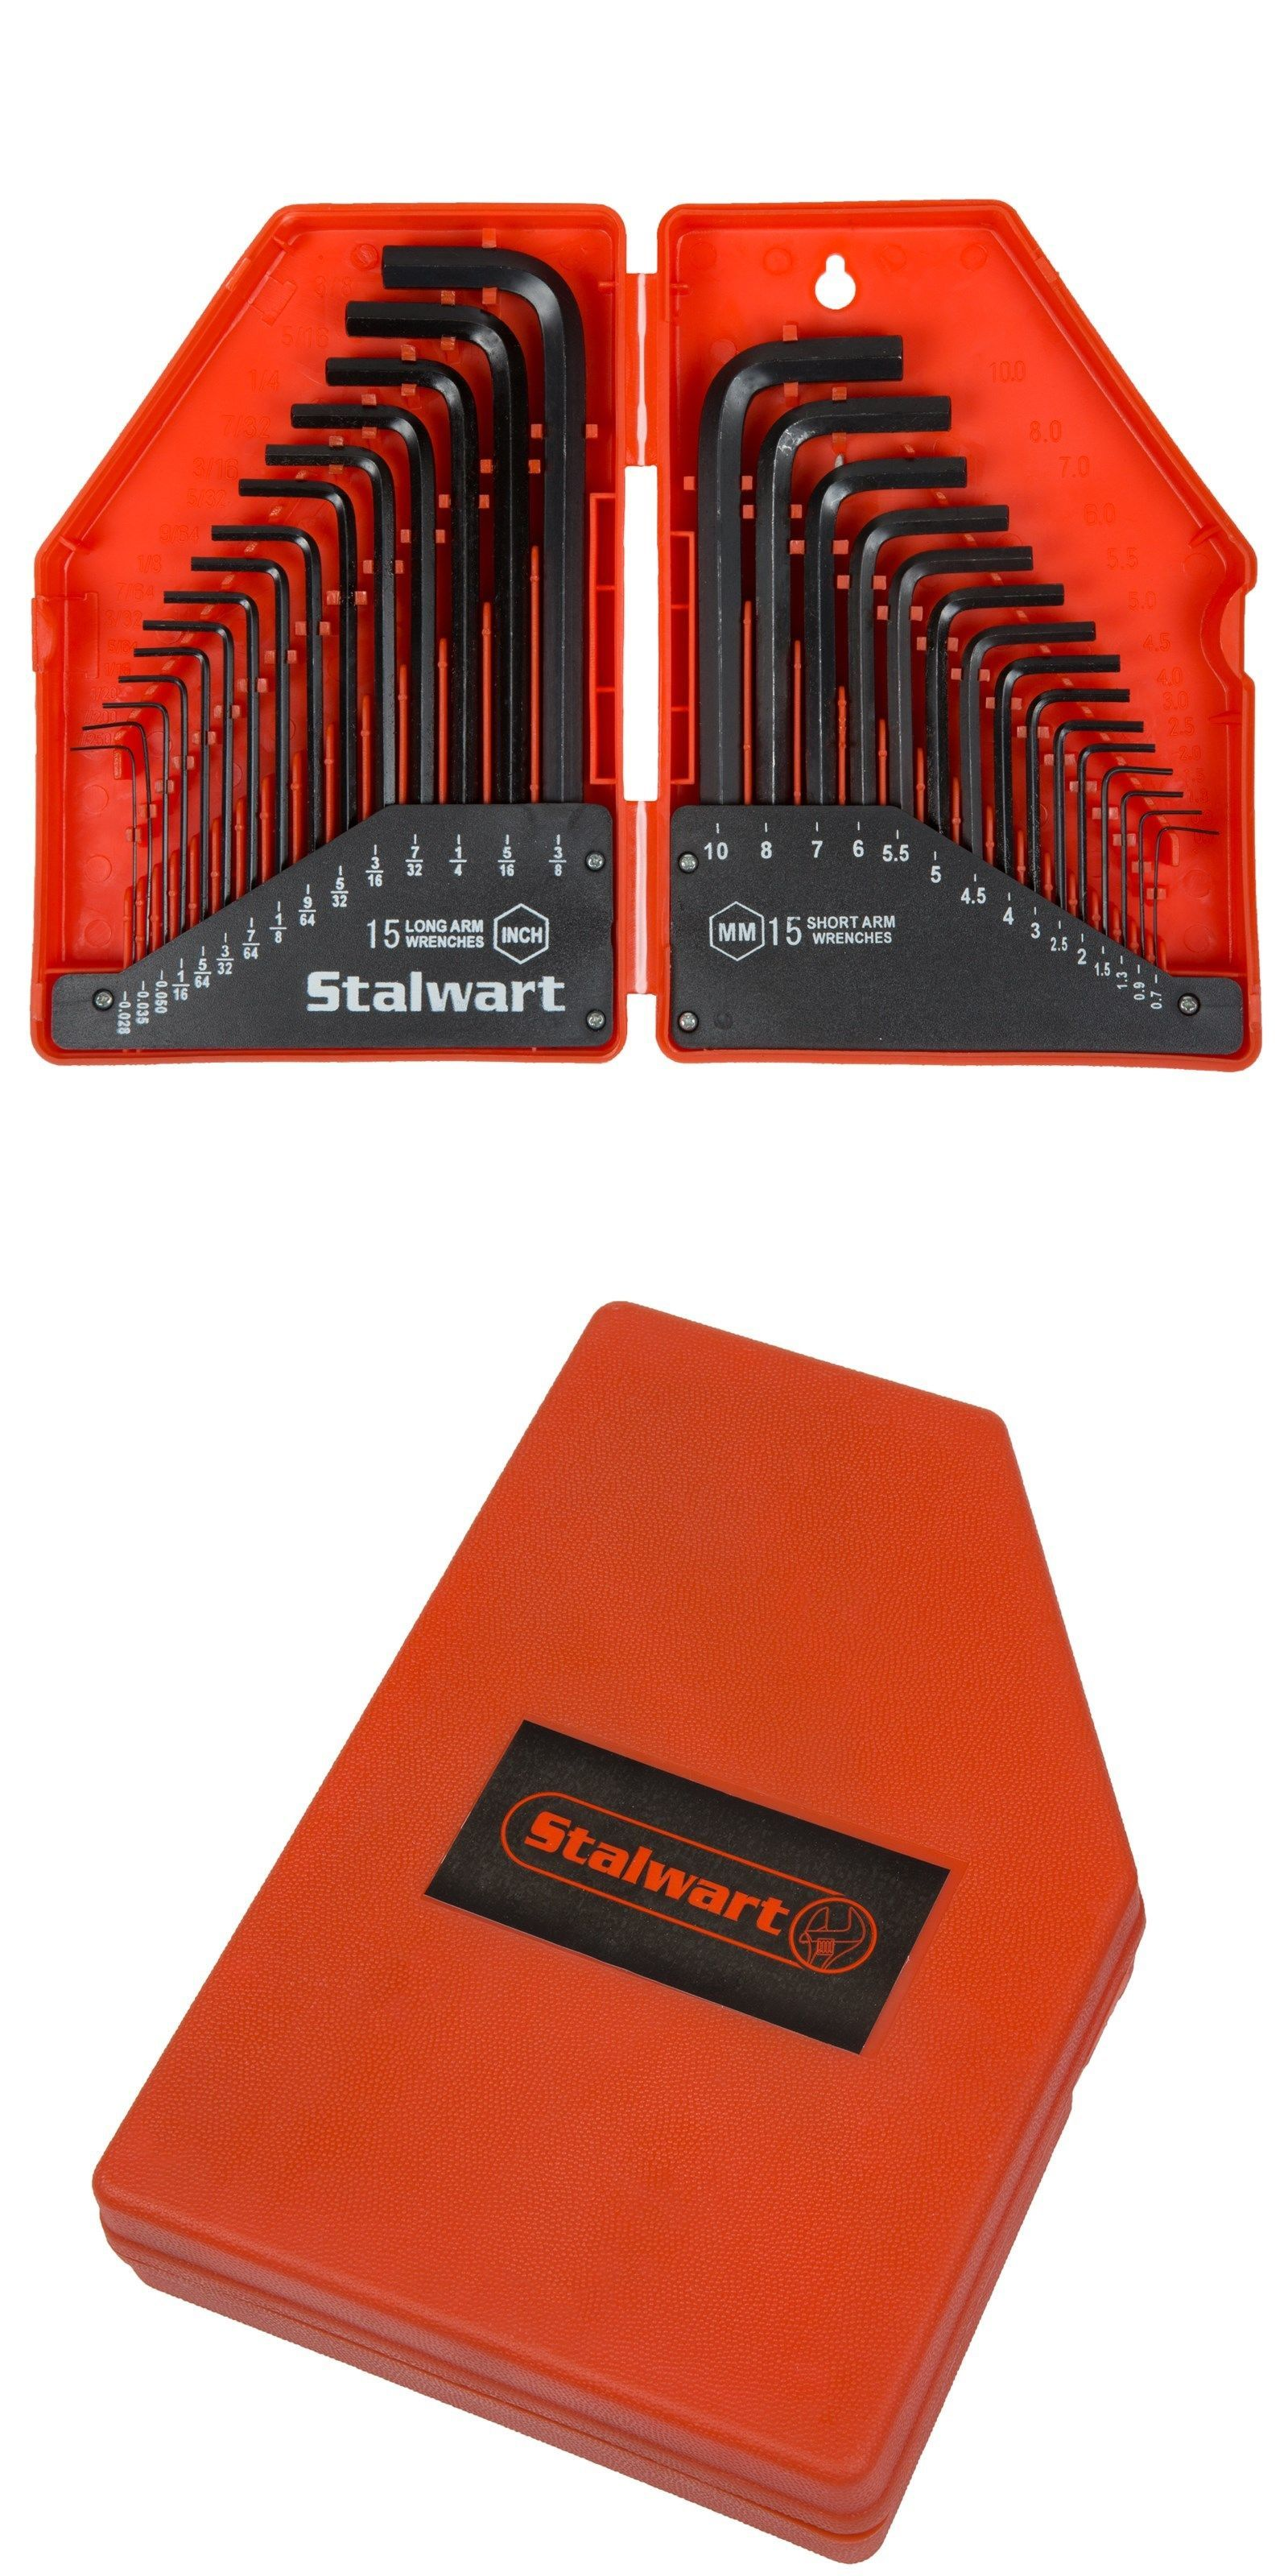 Hex Keys And Wrenches 42258 Stalwart 30 Piece Hex Allen Wrench Key Set Sae Metric Set In Case Buy It Now Only 13 99 On Ebay W Hex Key Wrench Set Wrench